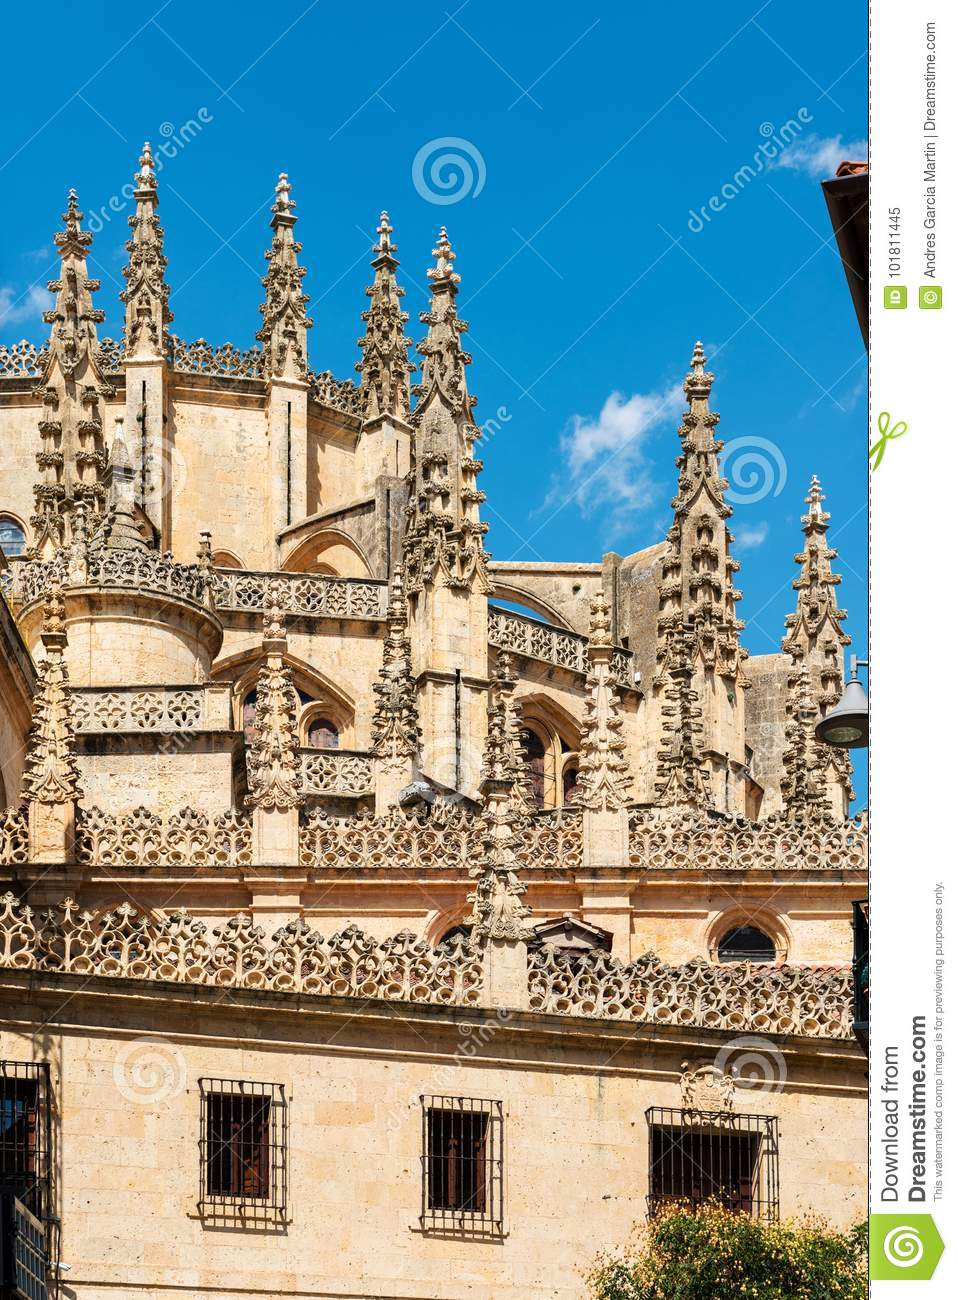 Outside Details Of The Architecture Cathedral Segovia Spain One Last Great Gothic Cathedrals In Europe Built 1522 1577